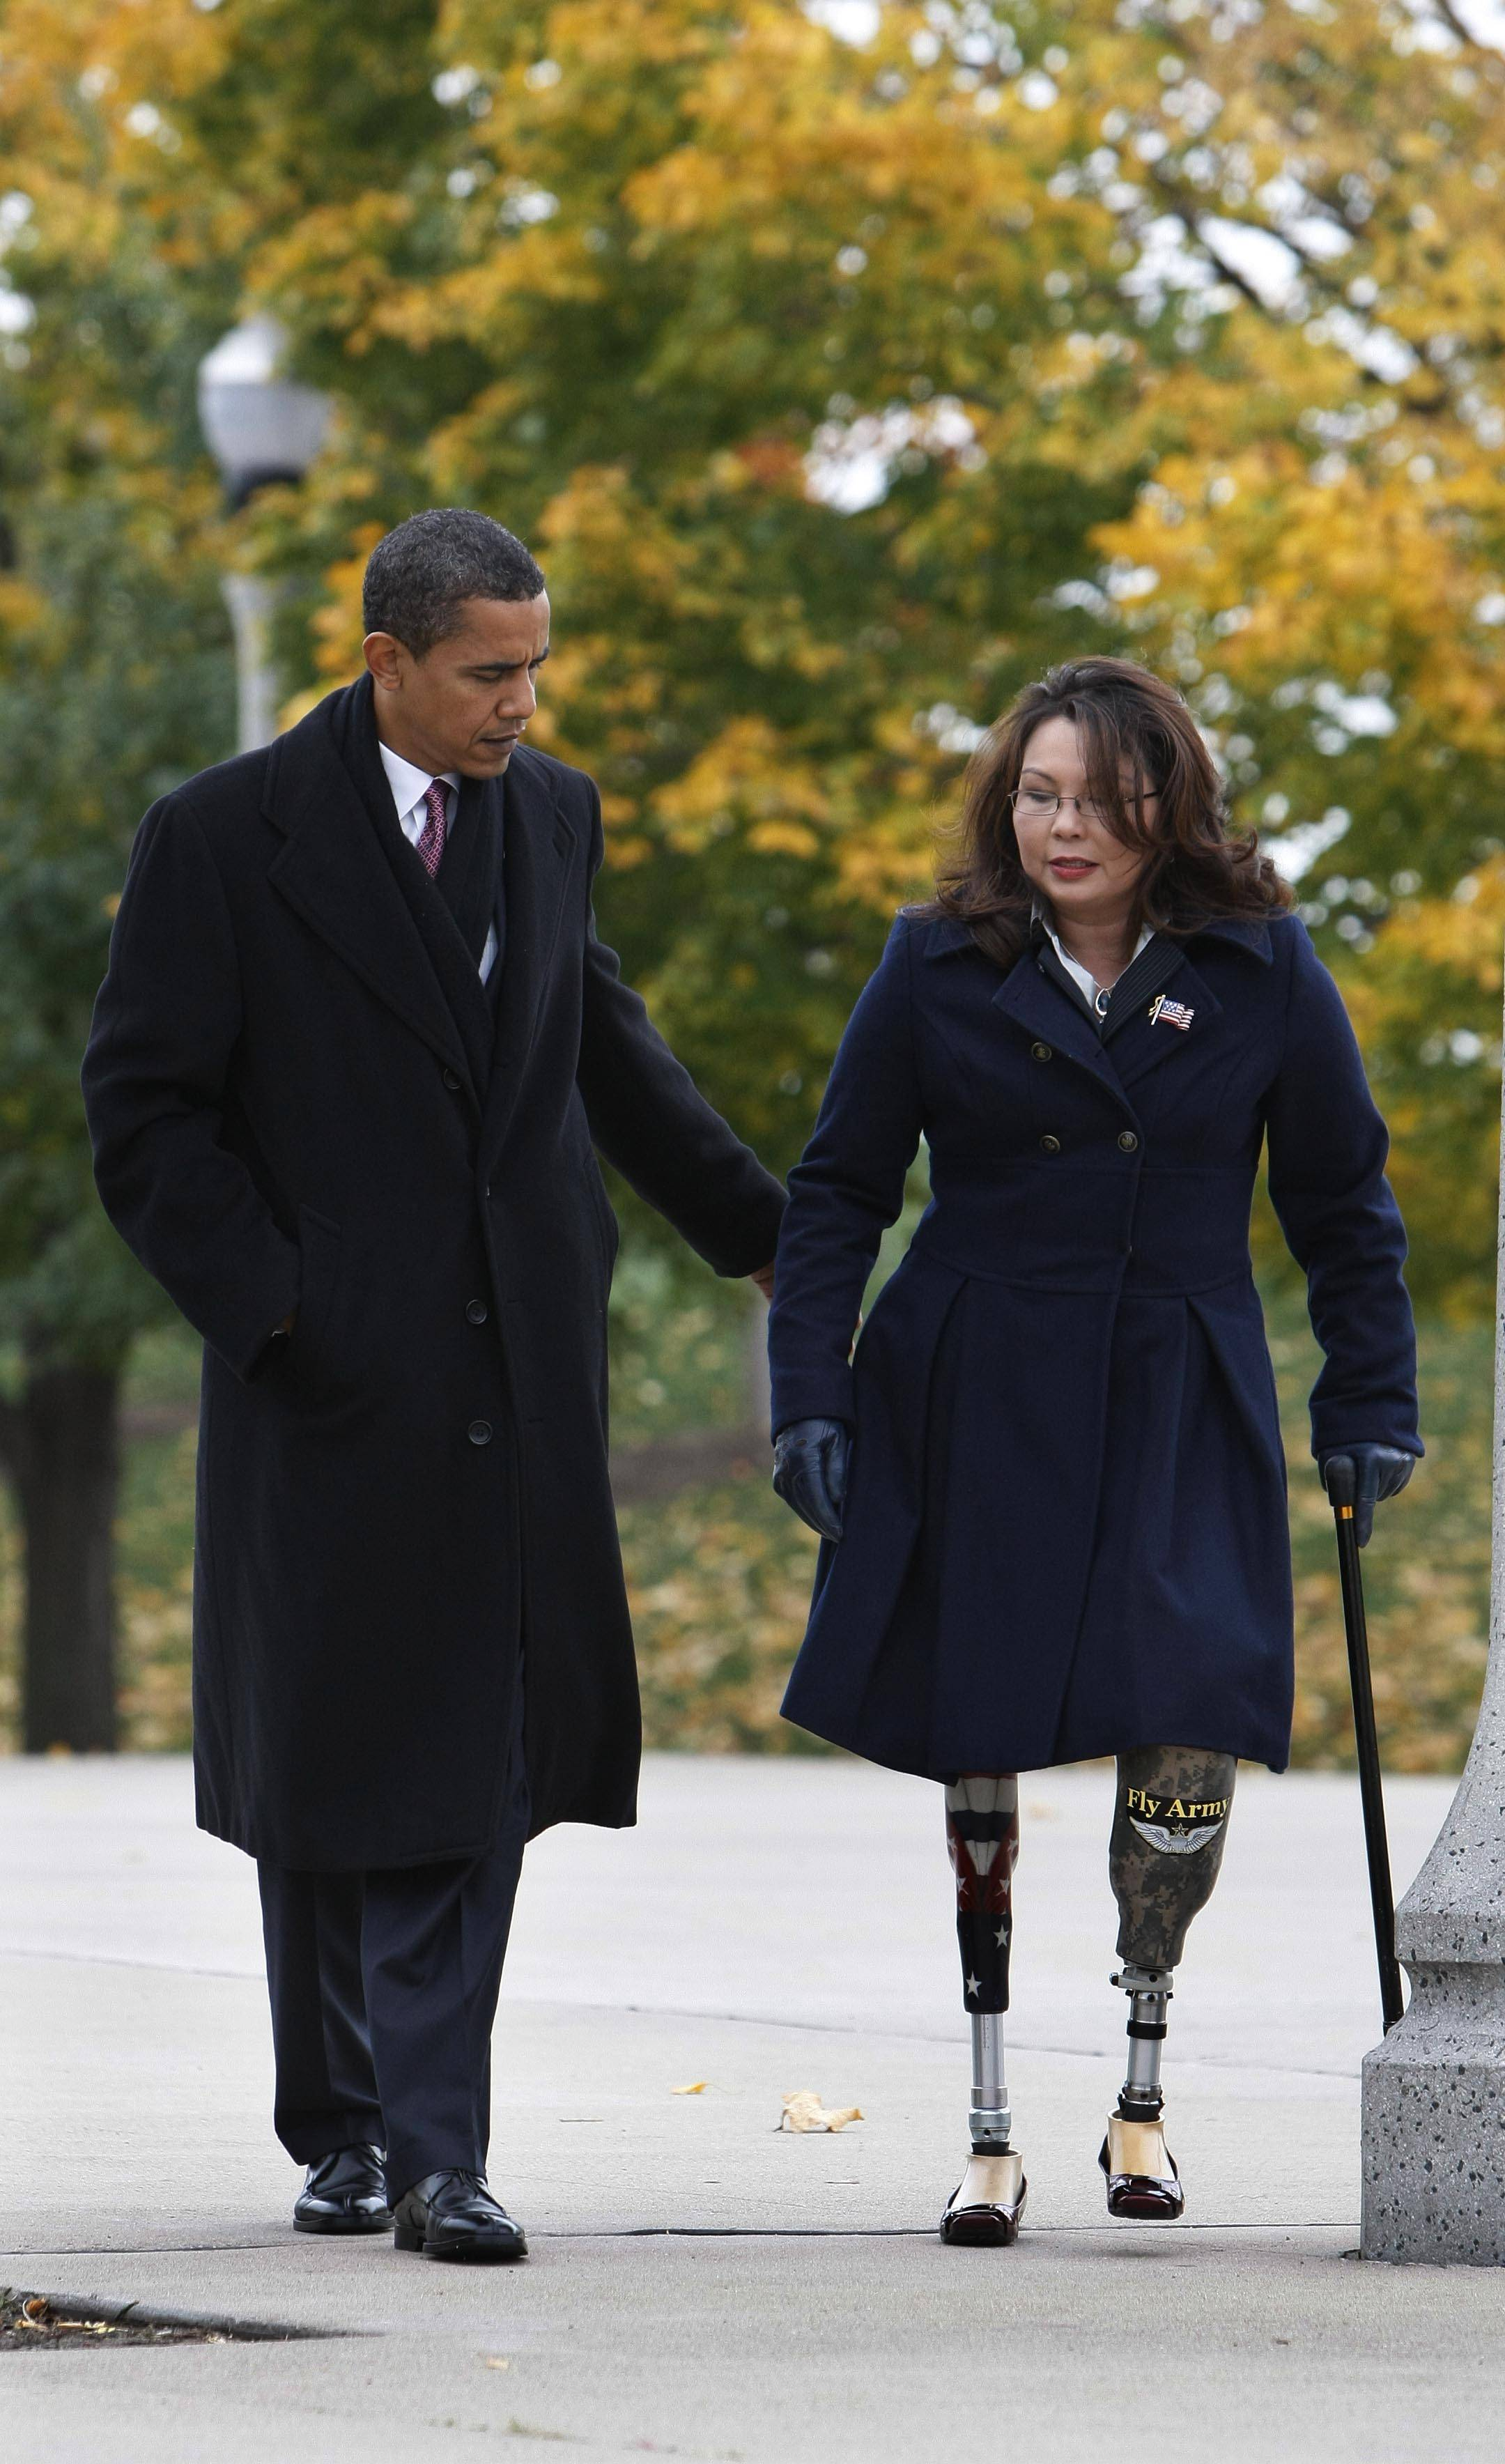 President Barack Obama signed legislation cowritten by U.S. Rep. Tammy Duckworth that aims to prevent veteran suicides.